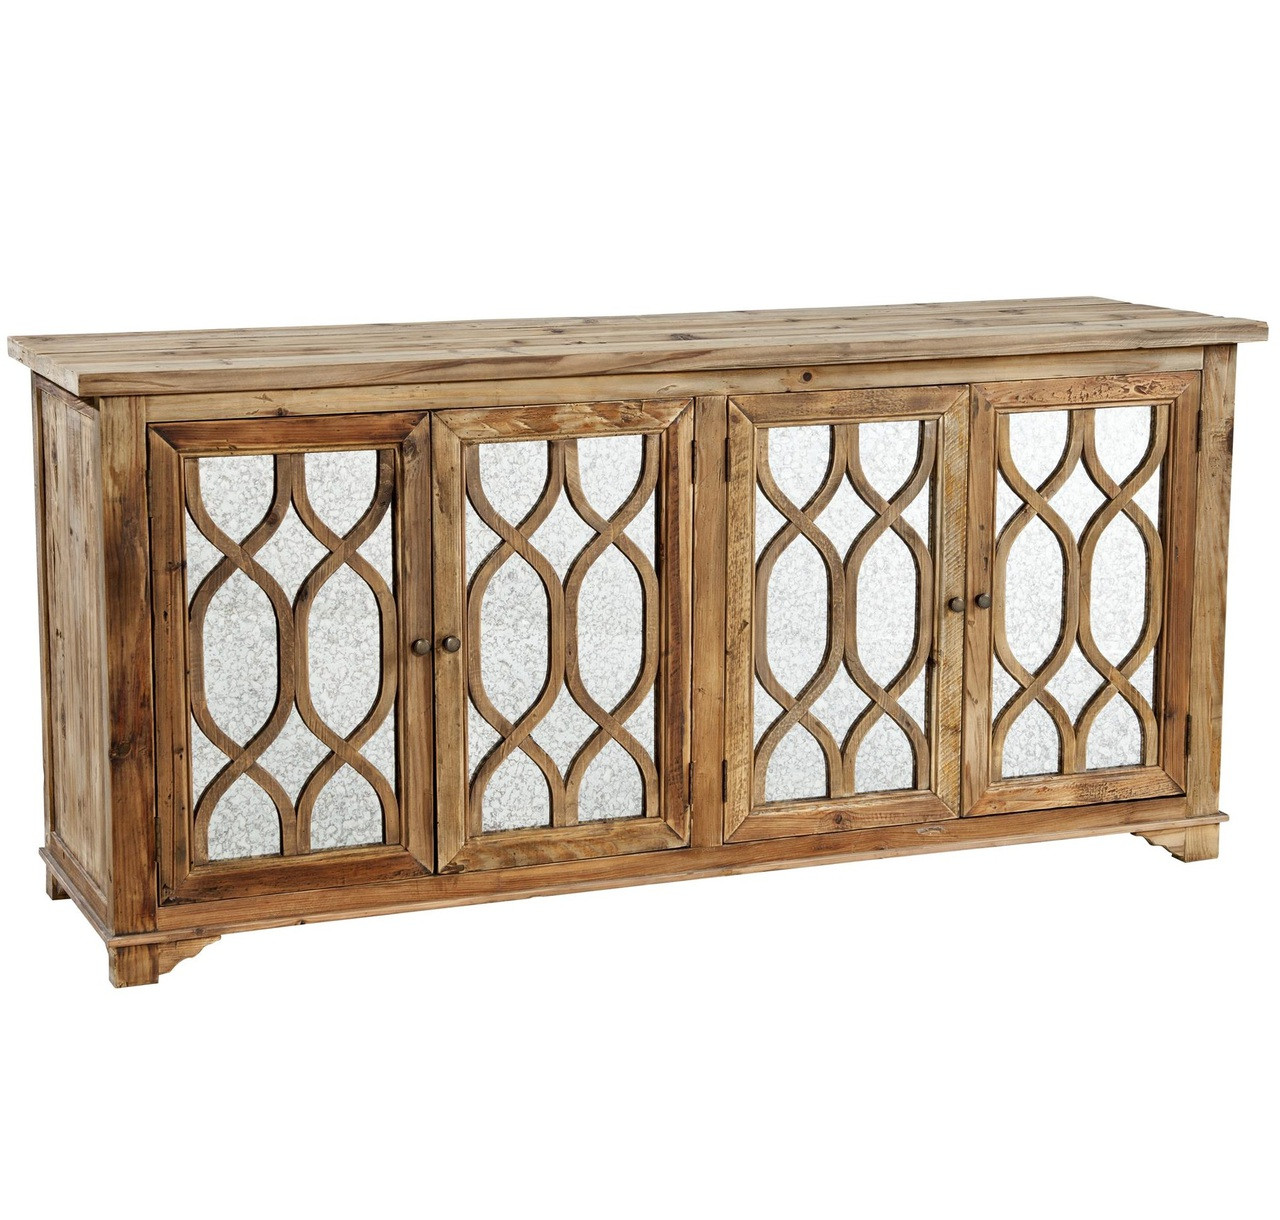 Bedroom Mirrored Furniture French Lattice Reclaimed Wood 4 Door Mirrored Sideboard